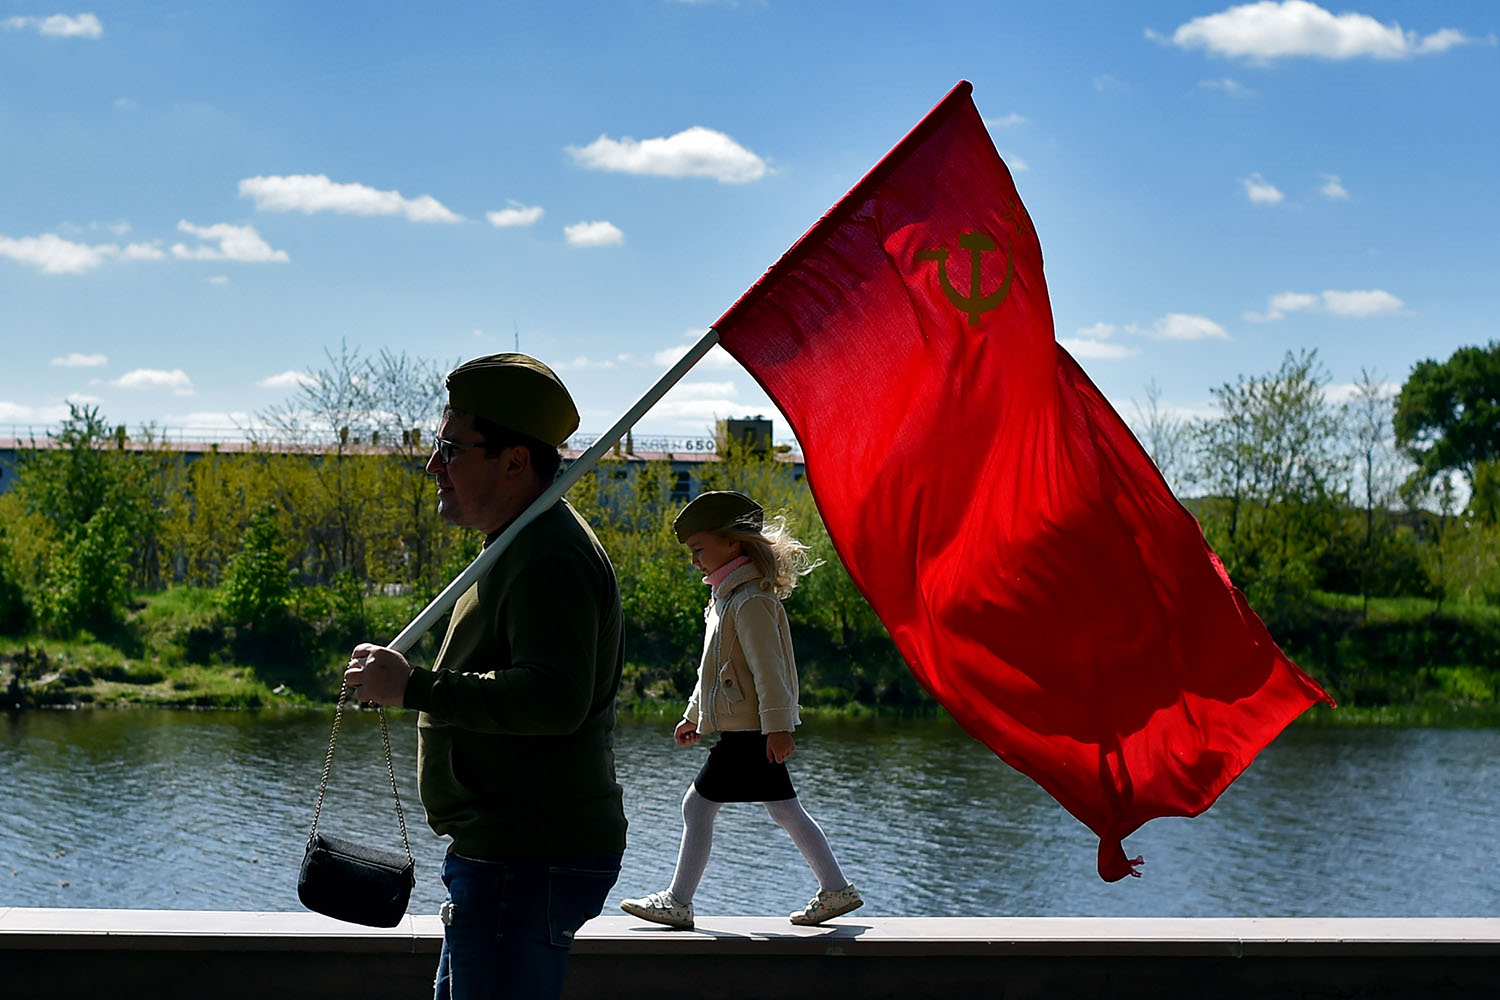 A man carries a Soviet flag during Victory Day celebrations in the town of Pinsk, southwest of Minsk, Belarus, on May 9. SERGEI GAPON/AFP/Getty Images